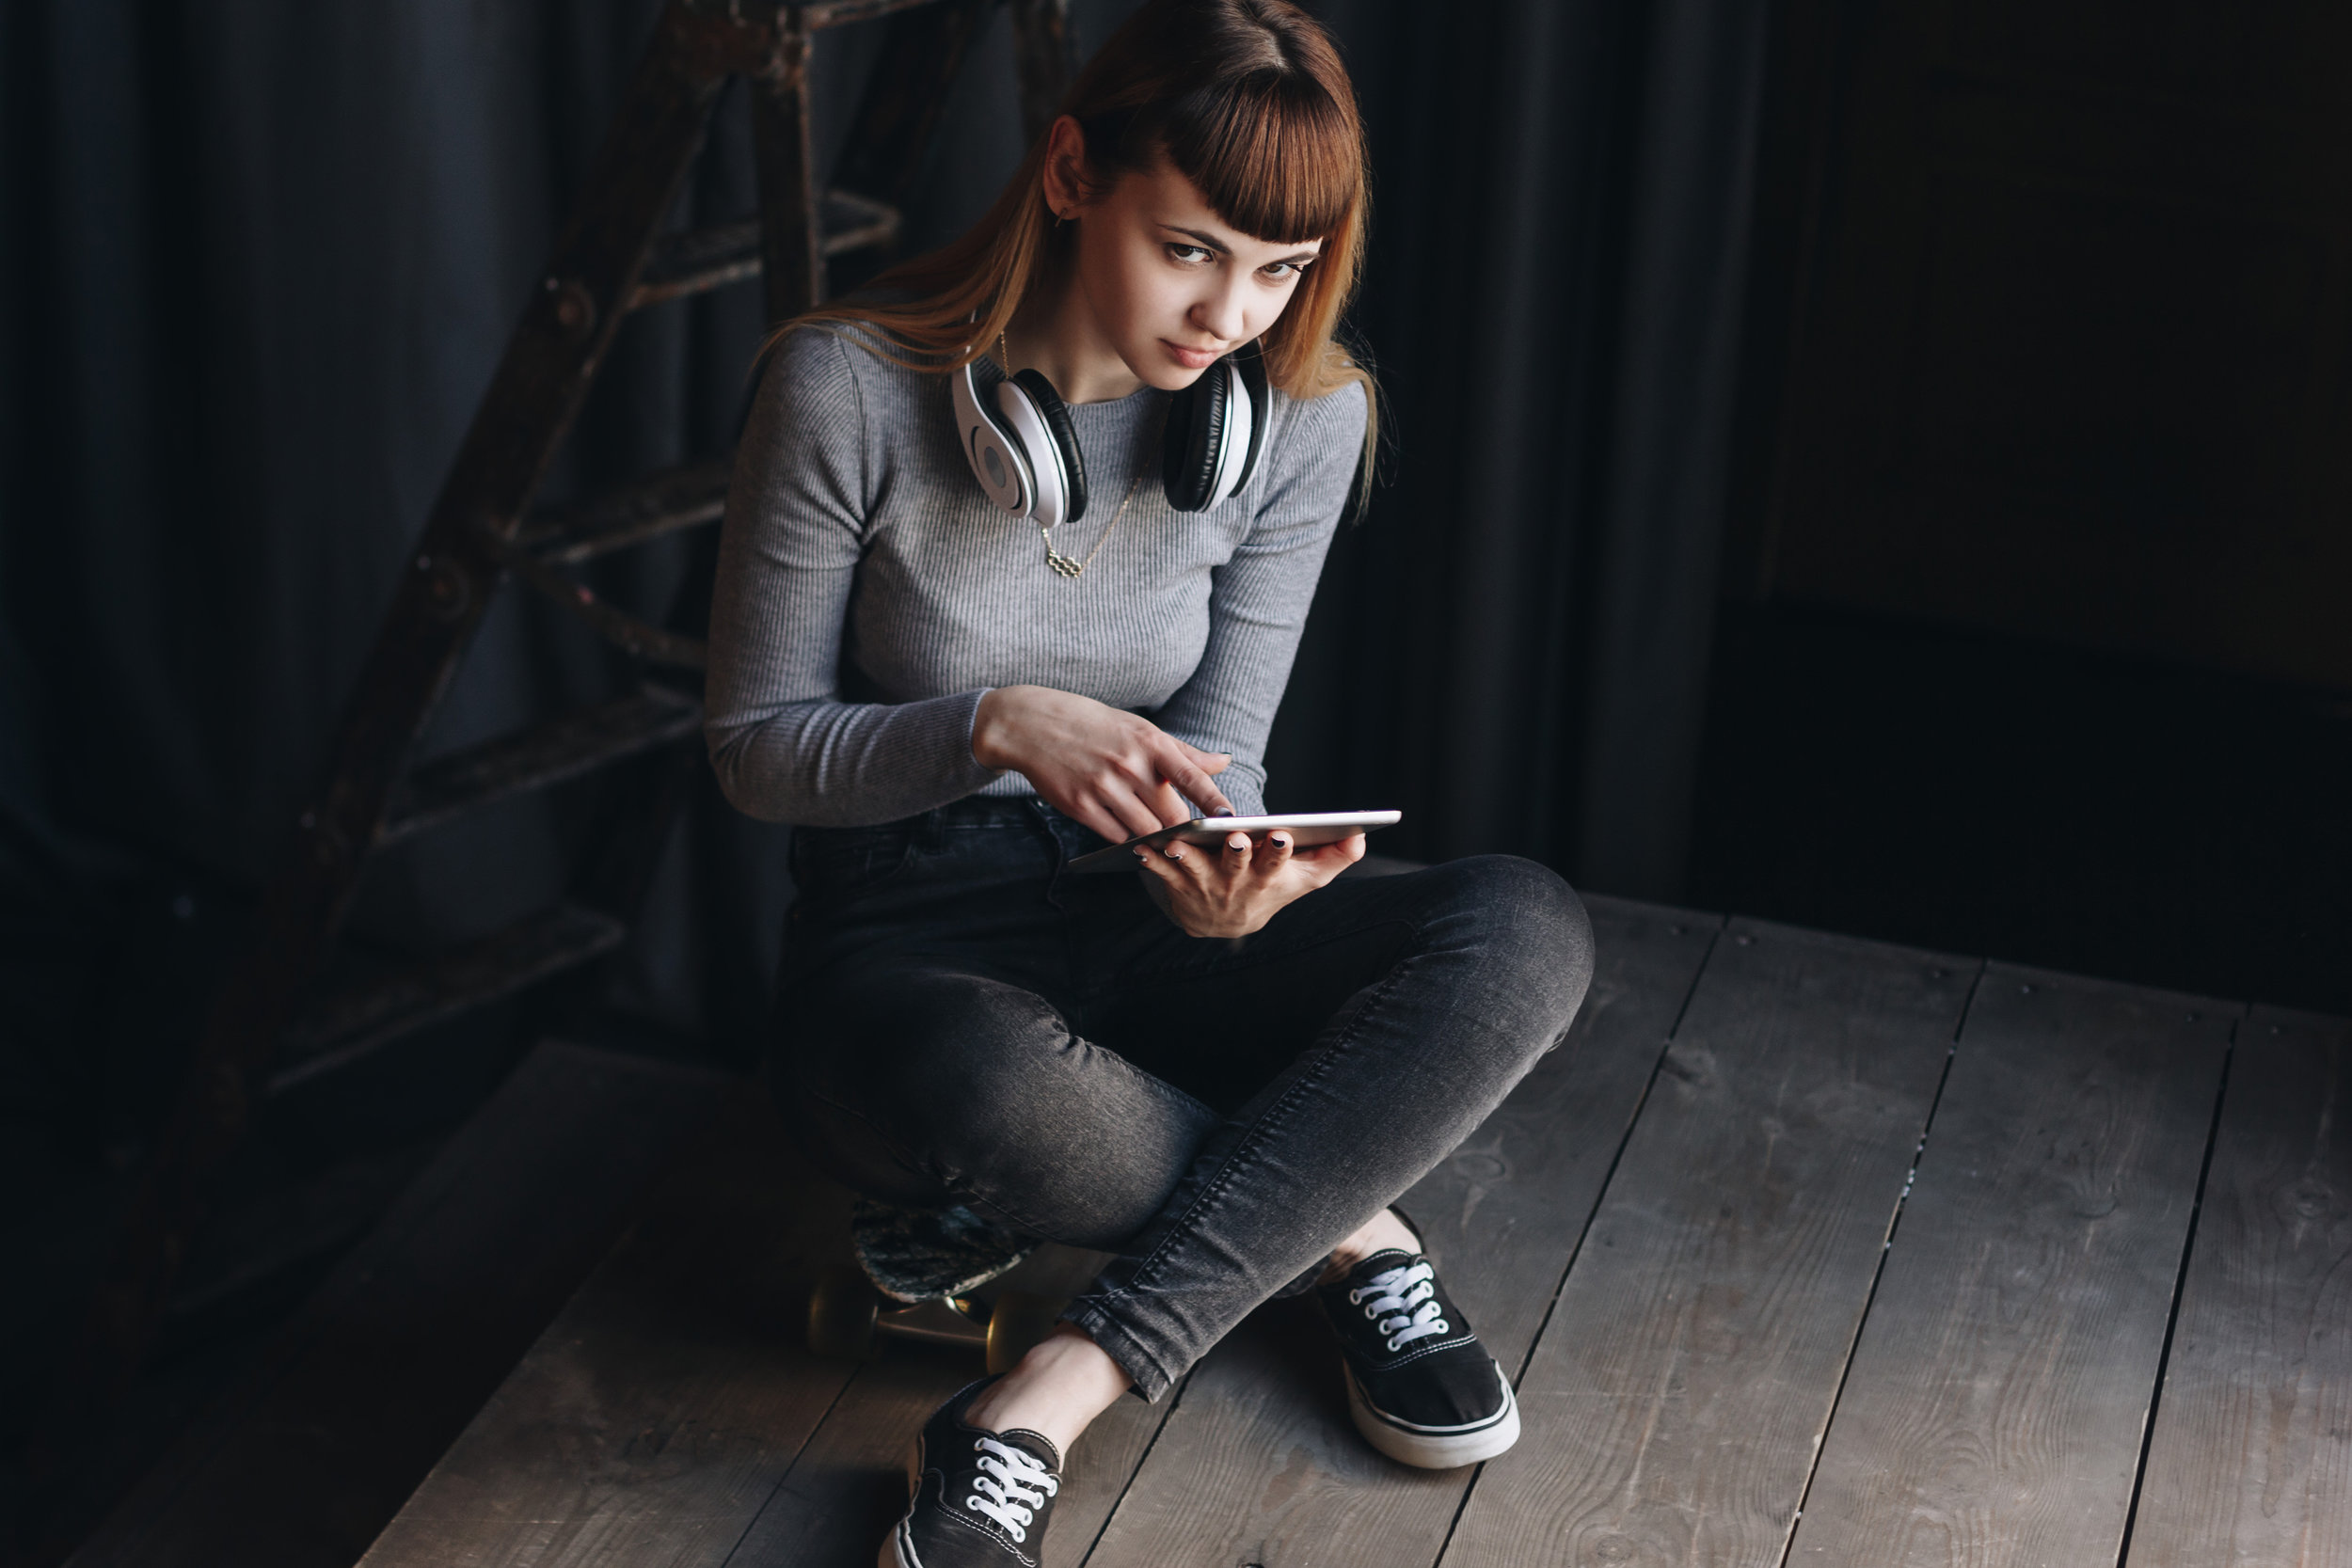 girl with cell phone fashionable.jpg